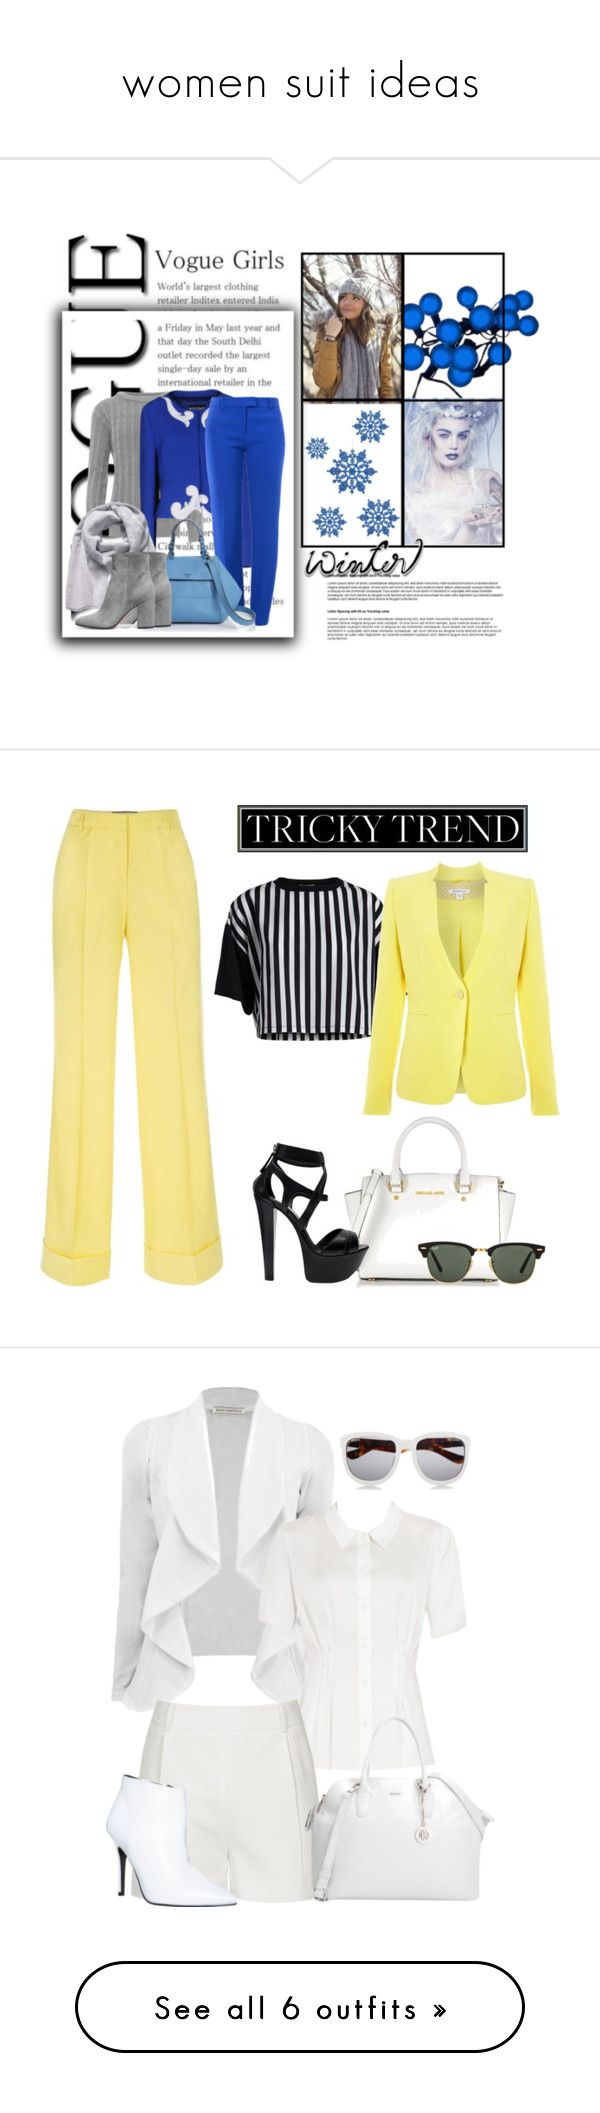 """""""women suit ideas"""" by sanitacrns on Polyvore featuring WearAll, Boutique Moschino, Tory Burch, The North Face, Gianvito Rossi, Paul Smith, Michael Kors, Pieces, Marella and Gianmarco Lorenzi"""